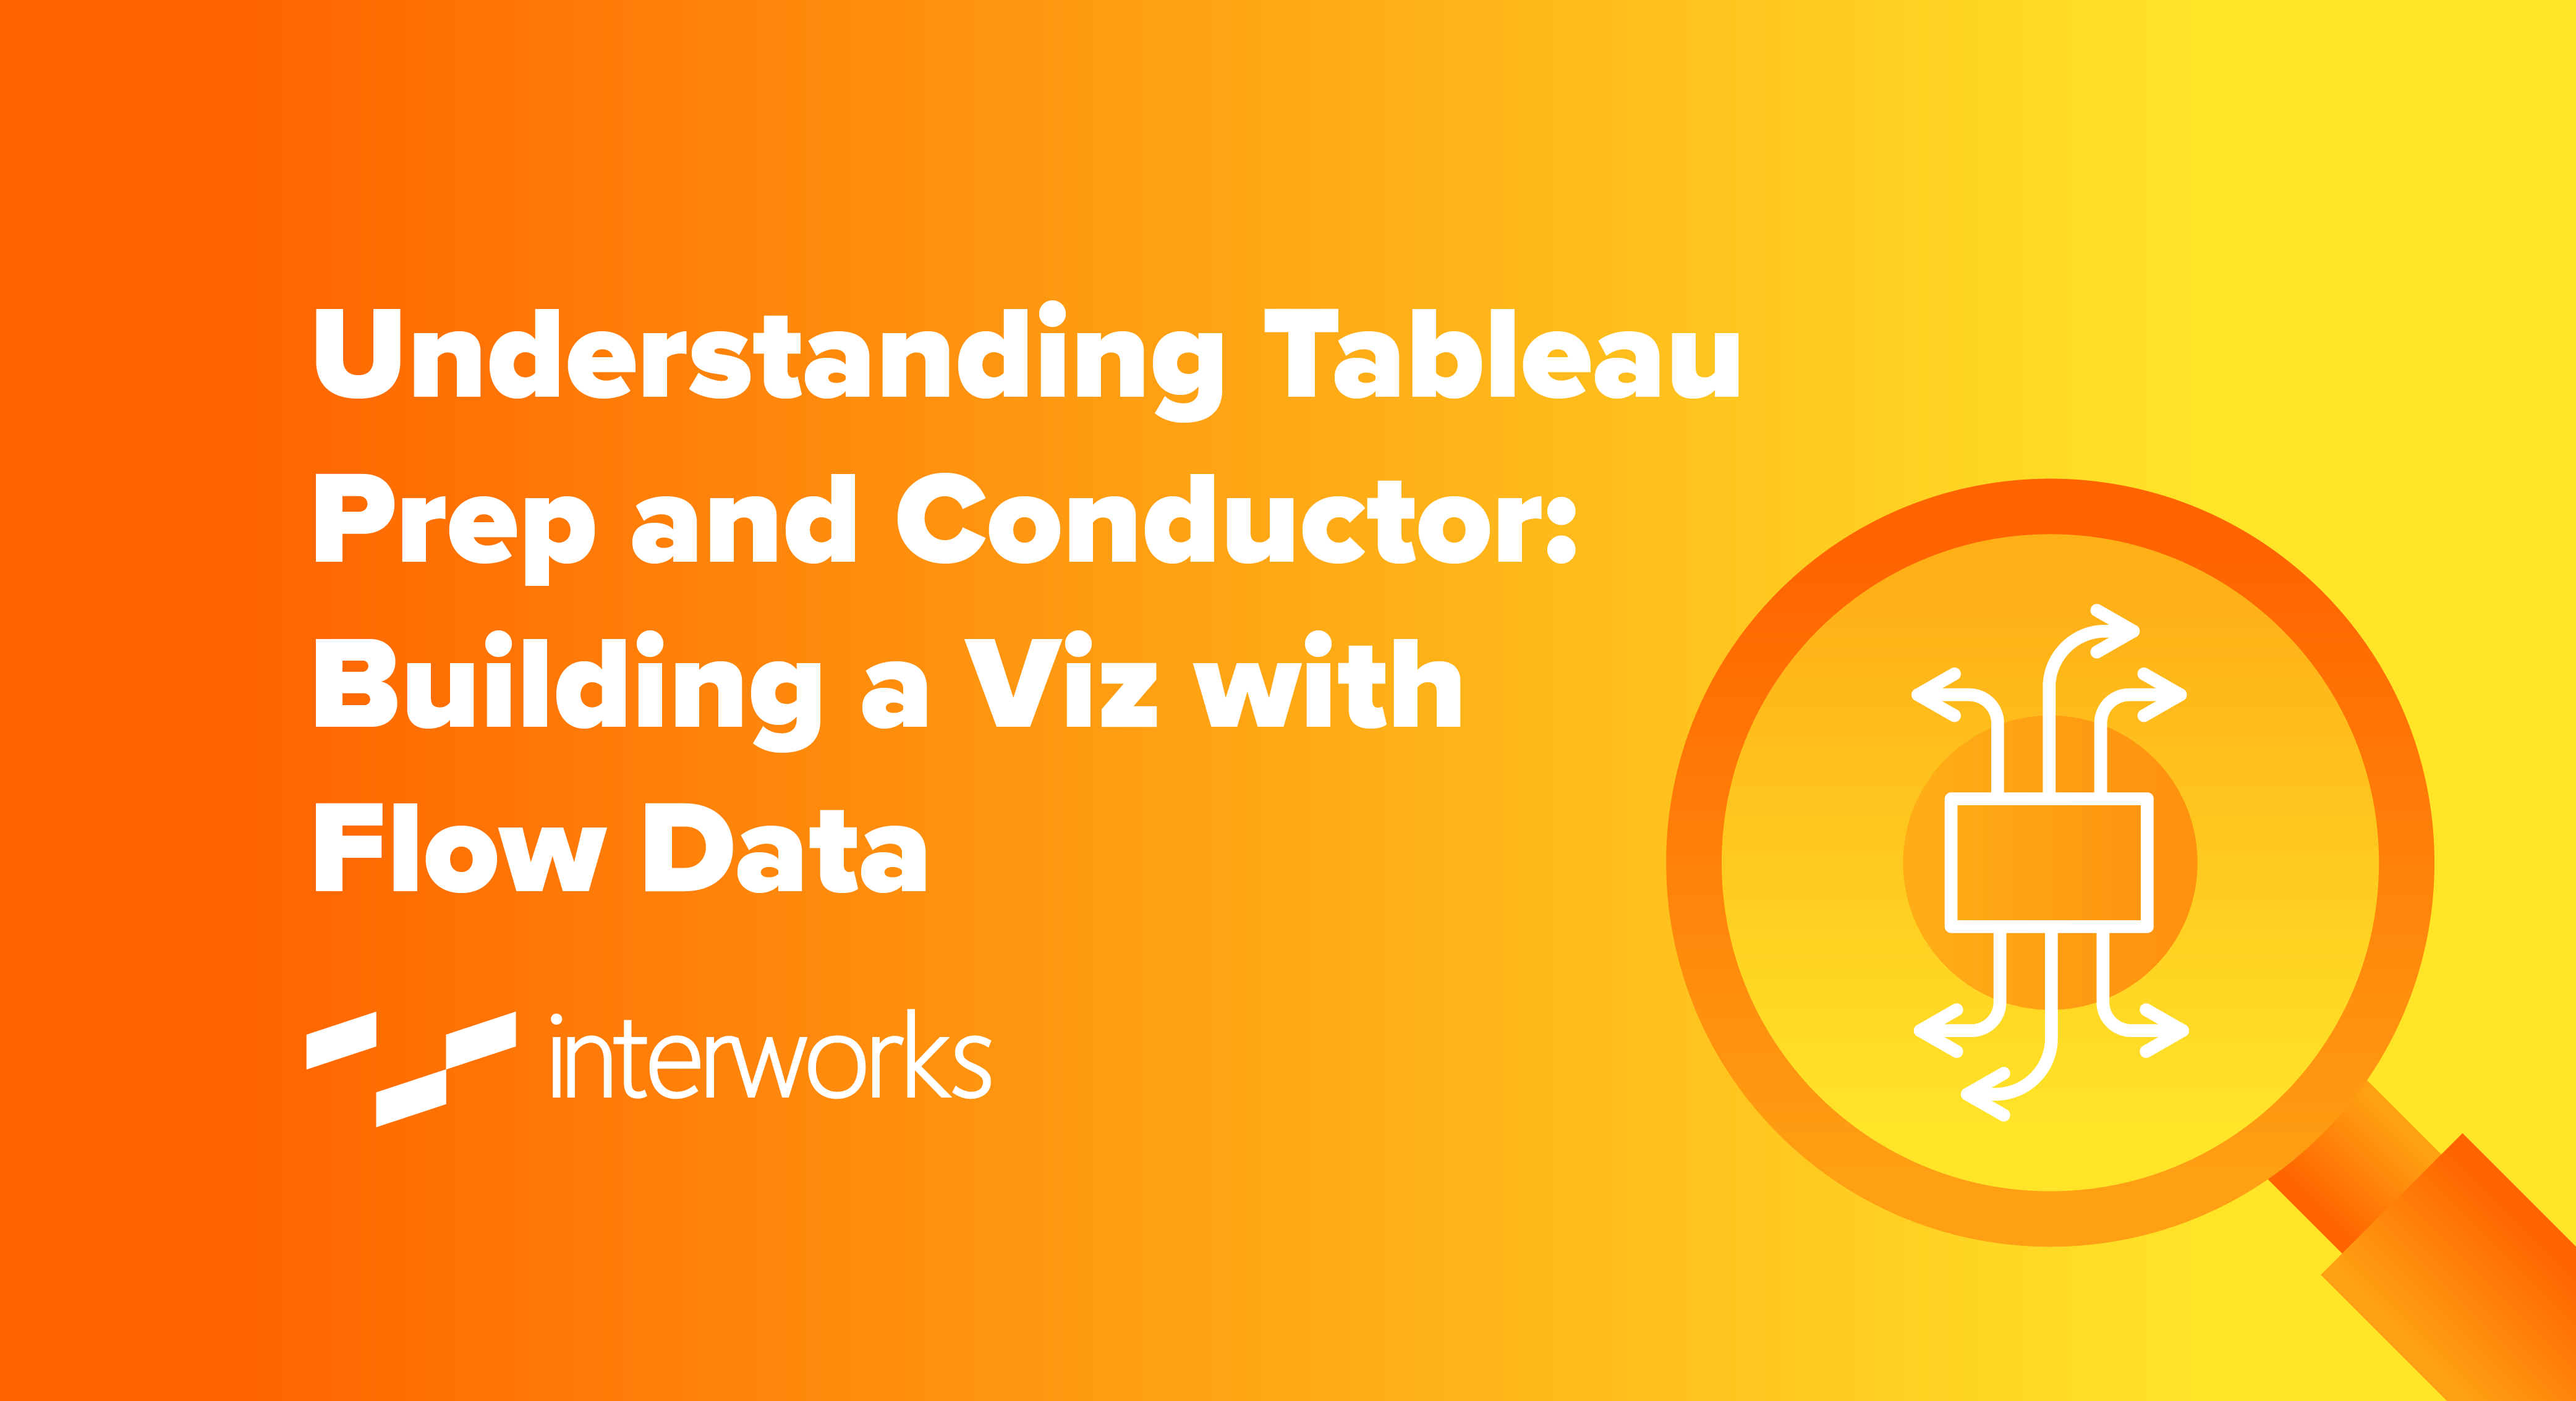 Understanding Tableau Prep and Conductor: Building a Viz with Flow Data